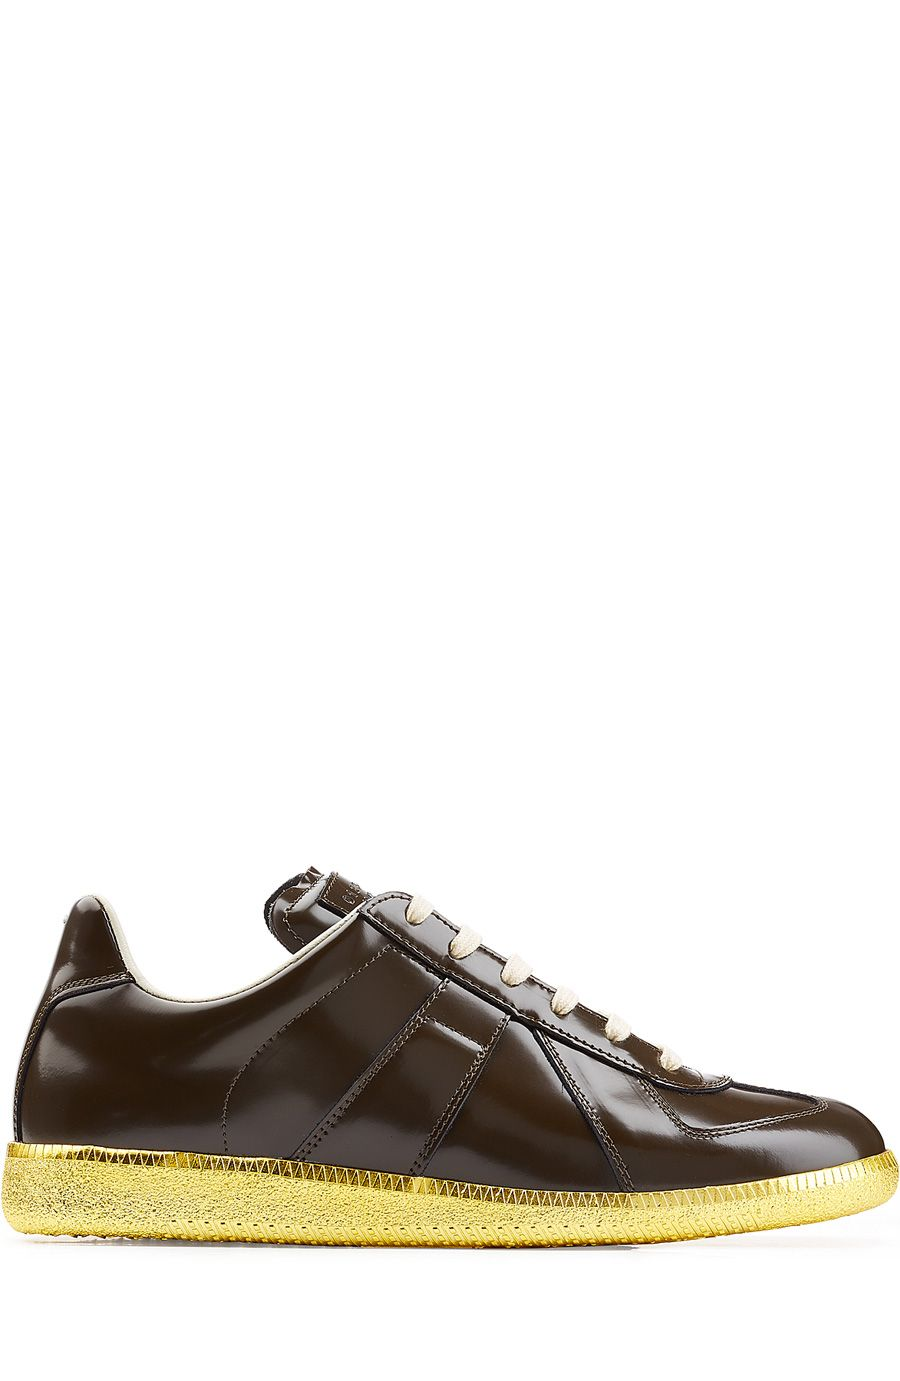 MAISON MARGIELA Replica Leather Sneakers. #maisonmargiela #shoes #sneakers